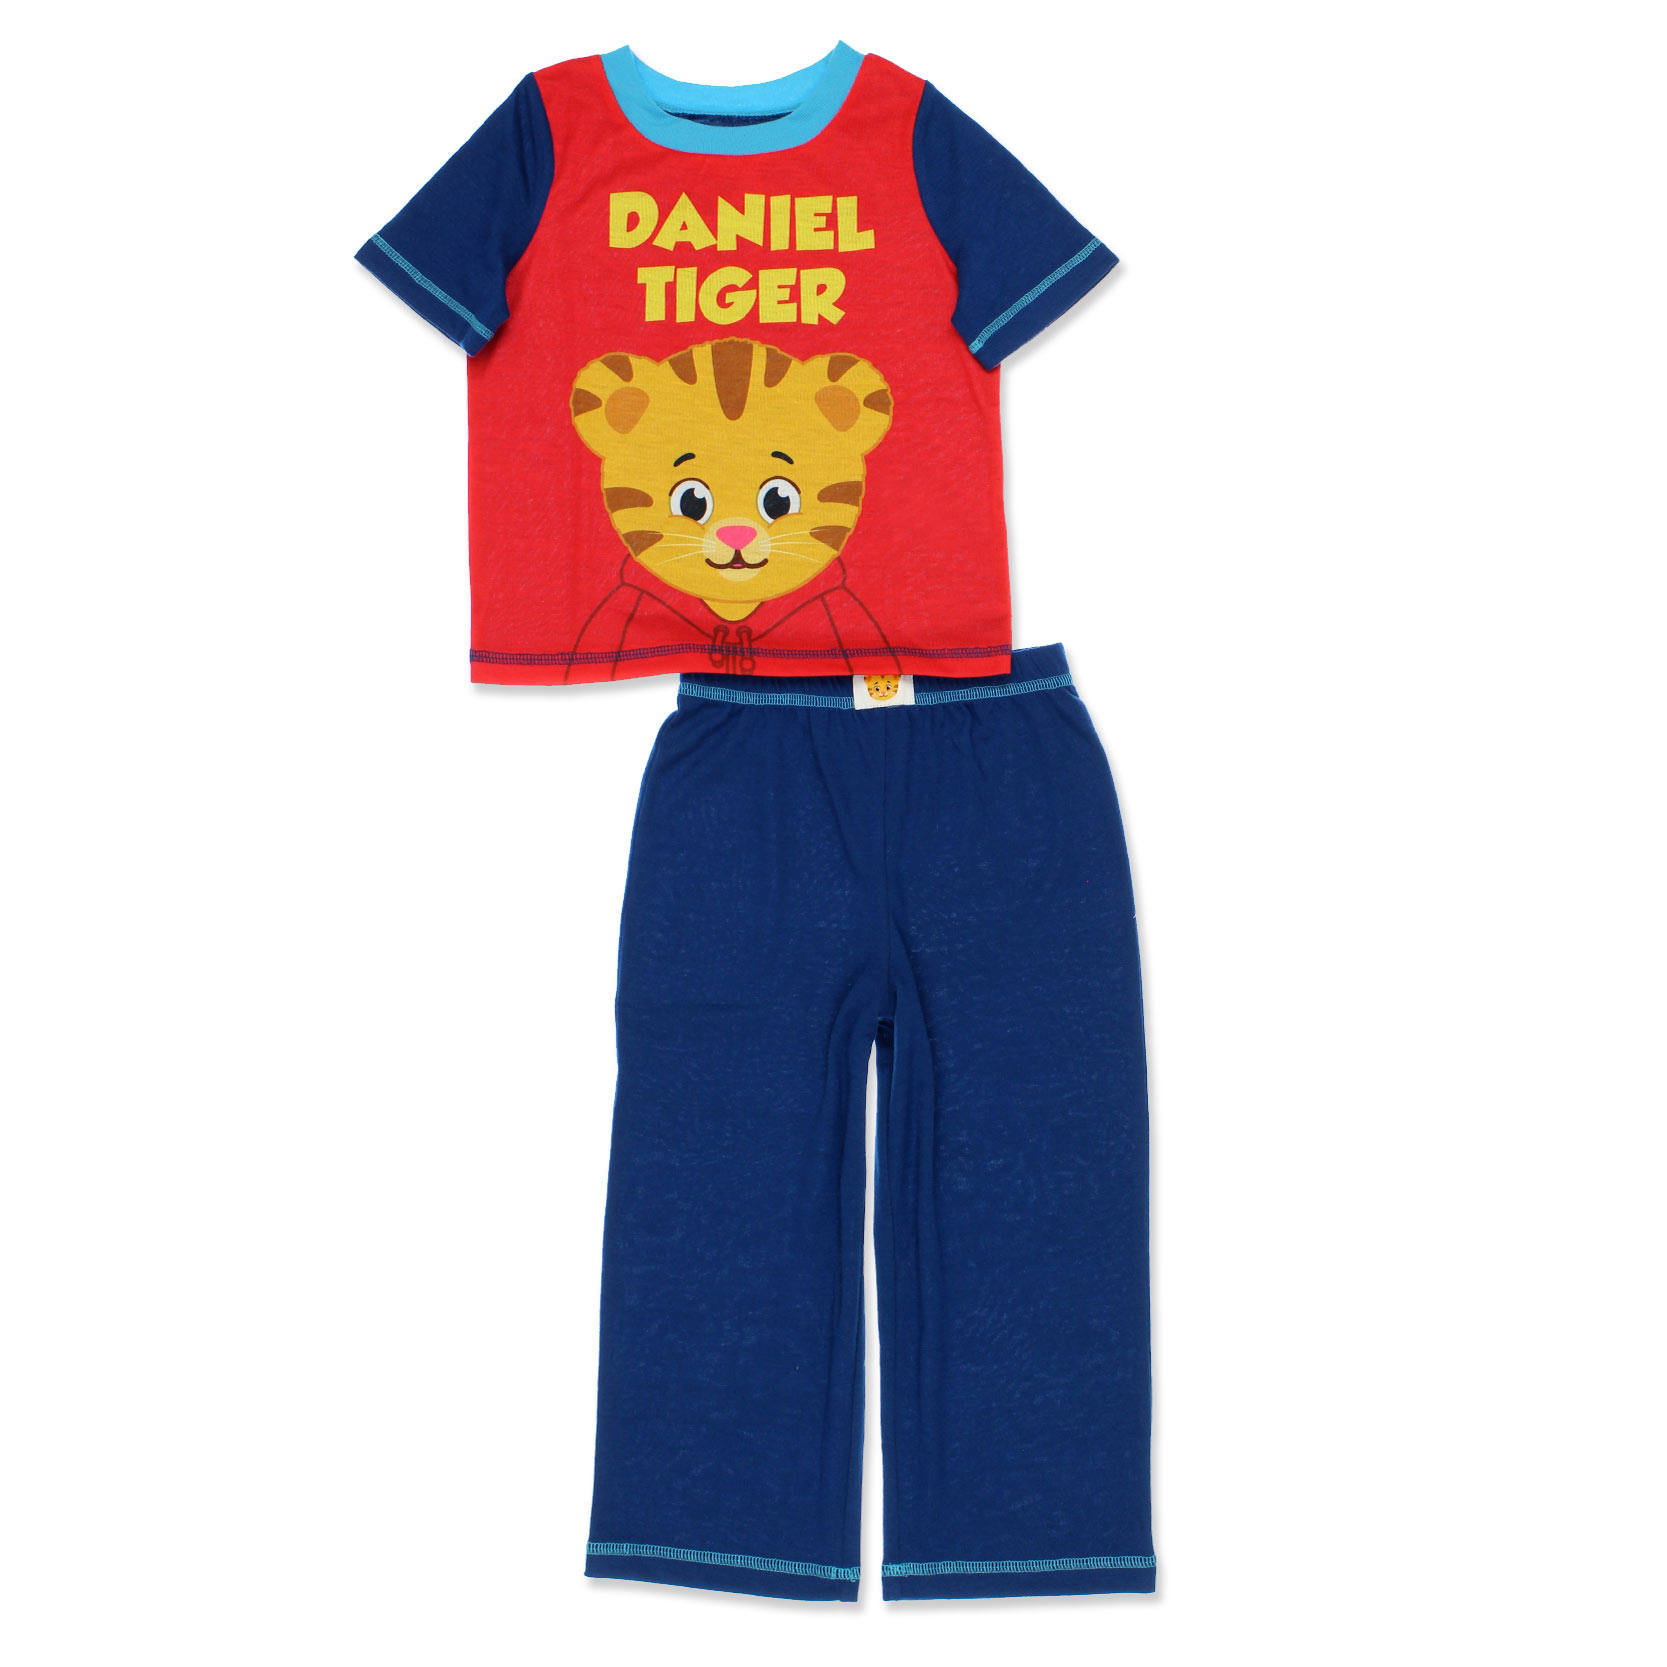 Daniel Tiger Blue And Red Toddler's Outfit